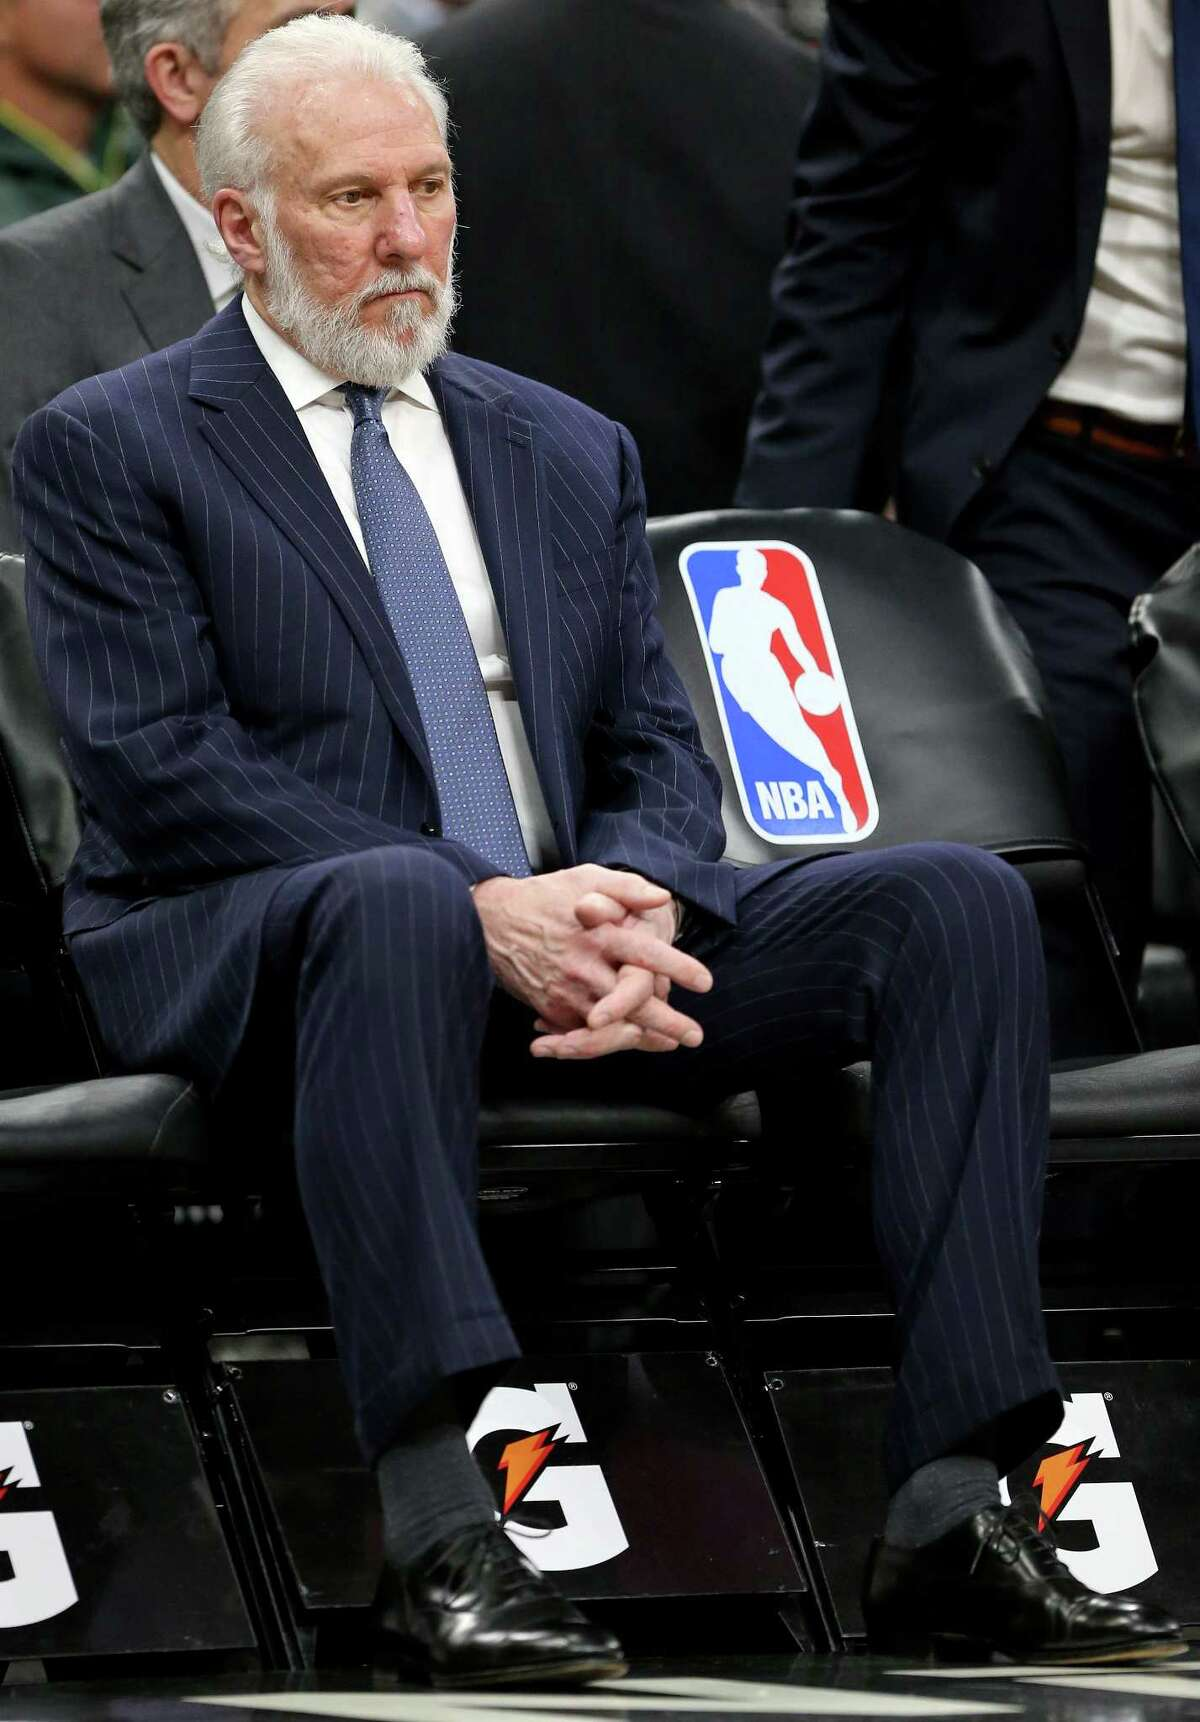 San Antonio Spurs head coach Gregg Popovich sits on the bench during a second half timeout against the Denver Nuggets Saturday Feb. 4, 2017 at the AT&T Center. The Spurs won 121-97.